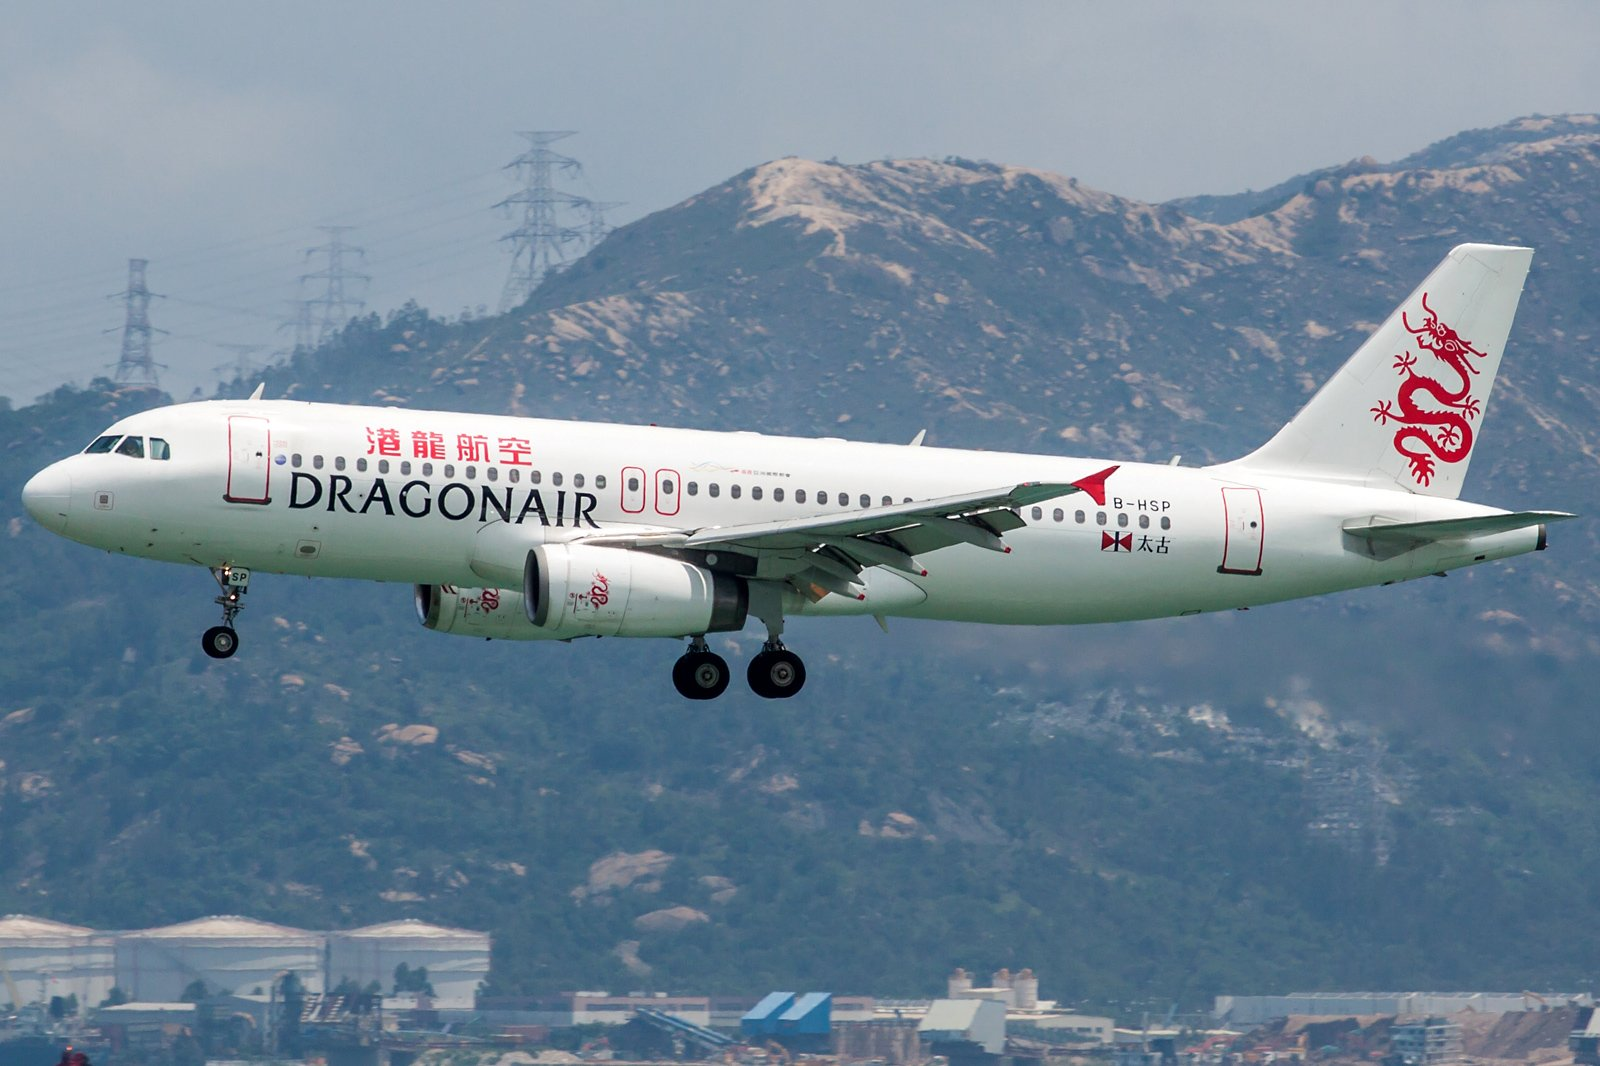 Dragonair (Cathay Dragon) Airbus A320-232 B-HSP